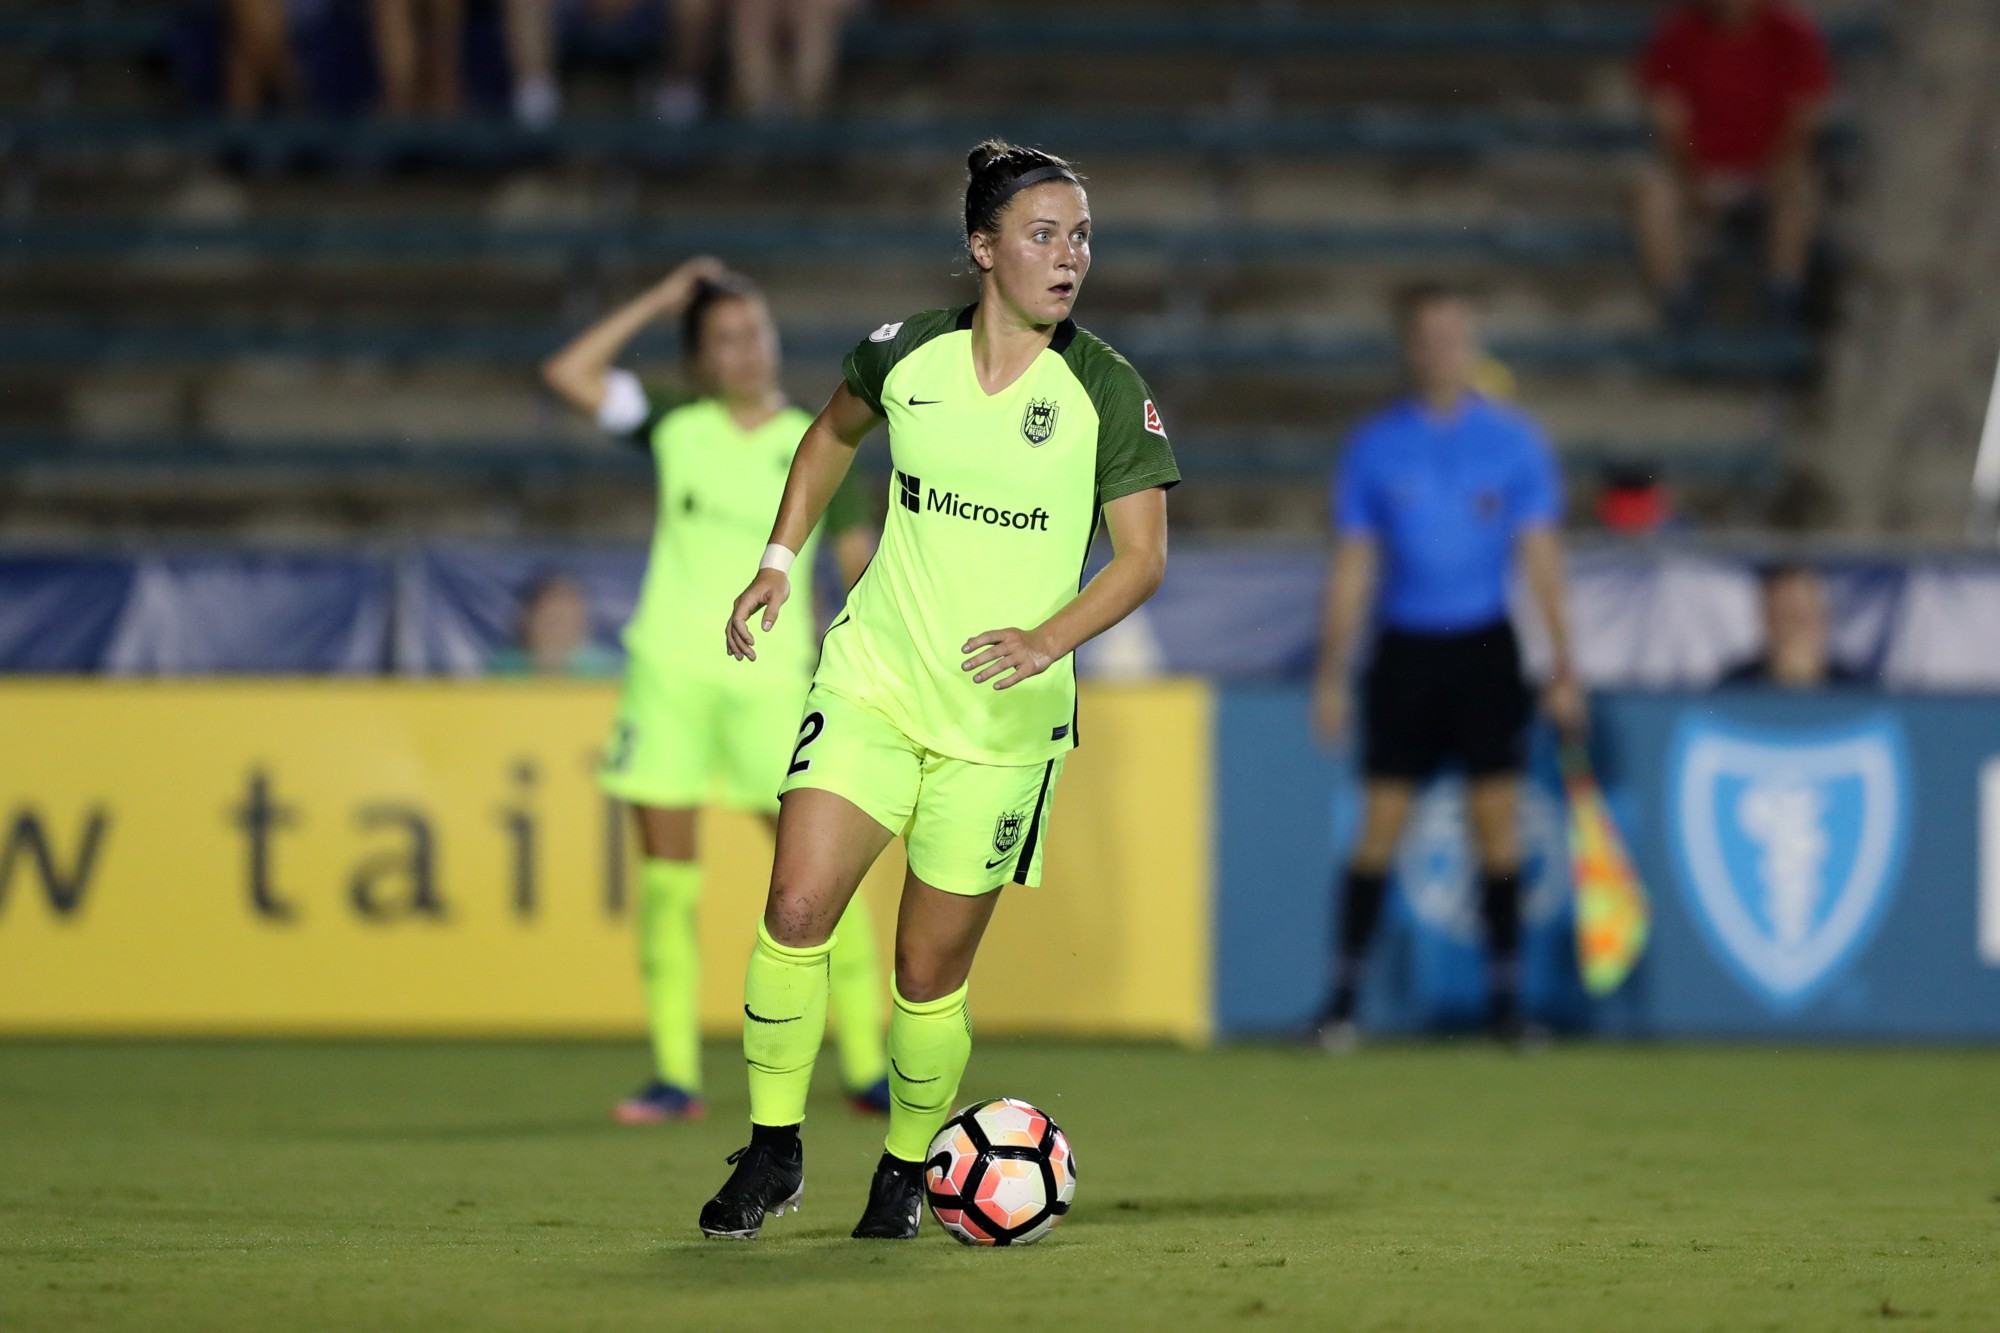 Reign FC Resume Season in North Carolina – TheBold: Seattle Reign FC